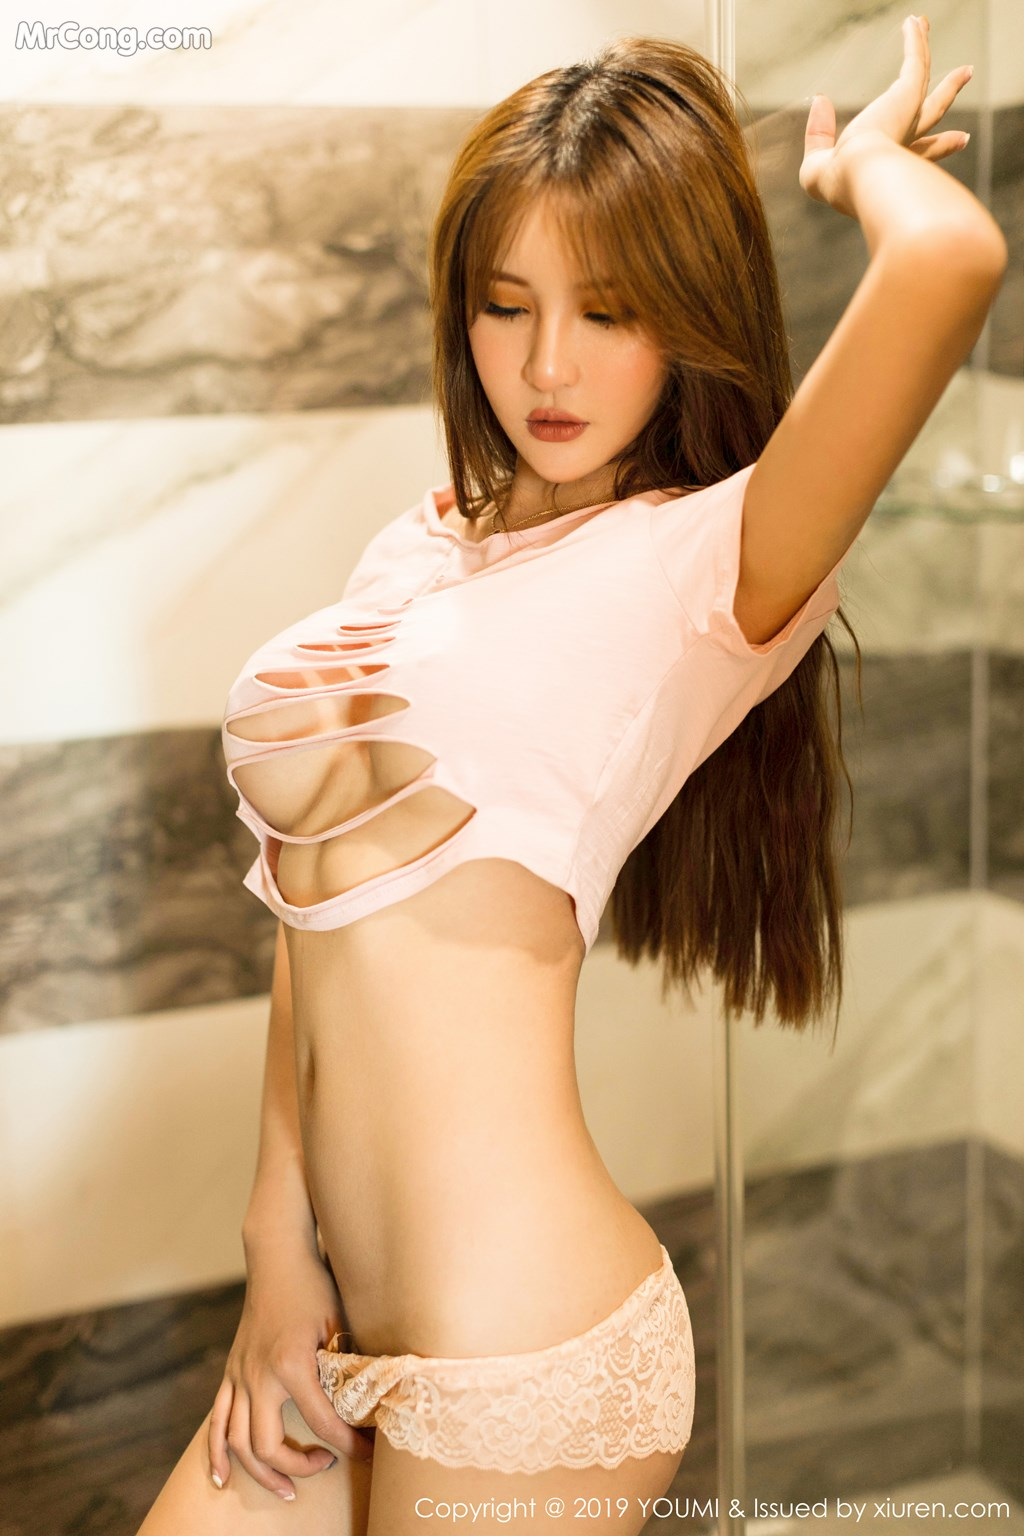 Image YouMi-Vol.342-Emily-MrCong.com-009 in post YouMi Vol.342: Emily顾奈奈 (42 ảnh)